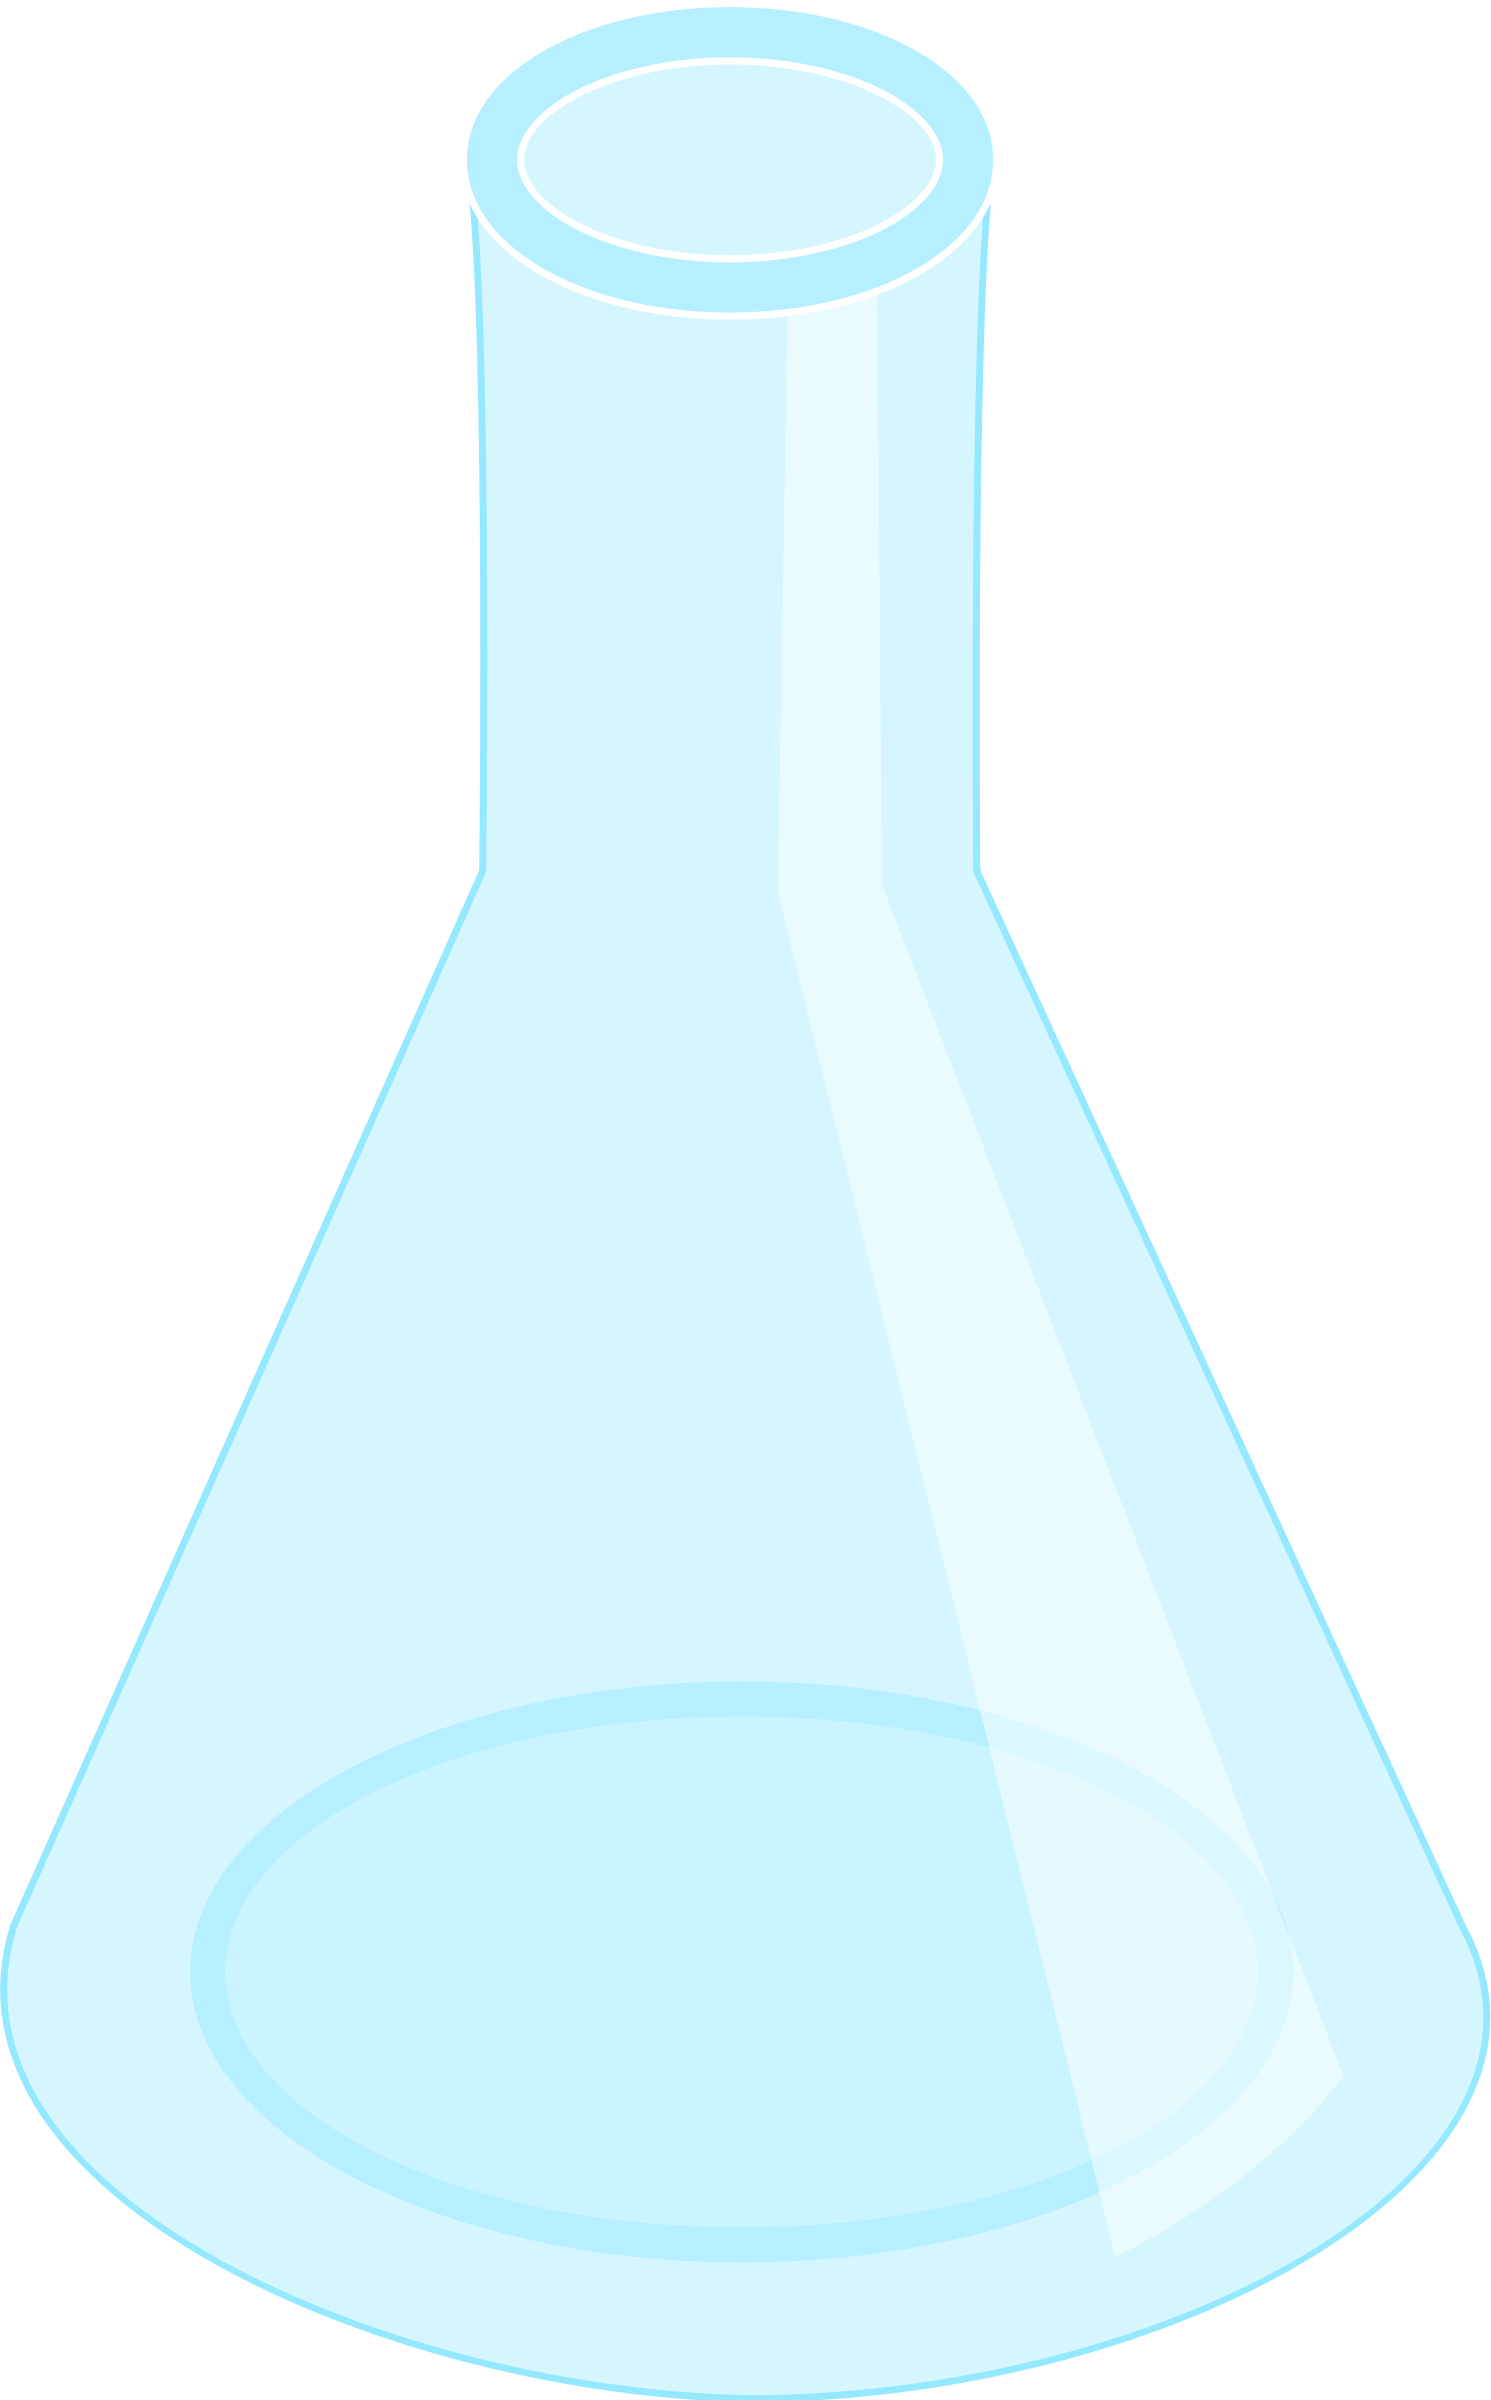 Remix of Kawaii Erlenmeyer Flask (Another Remix!) by jonathan357